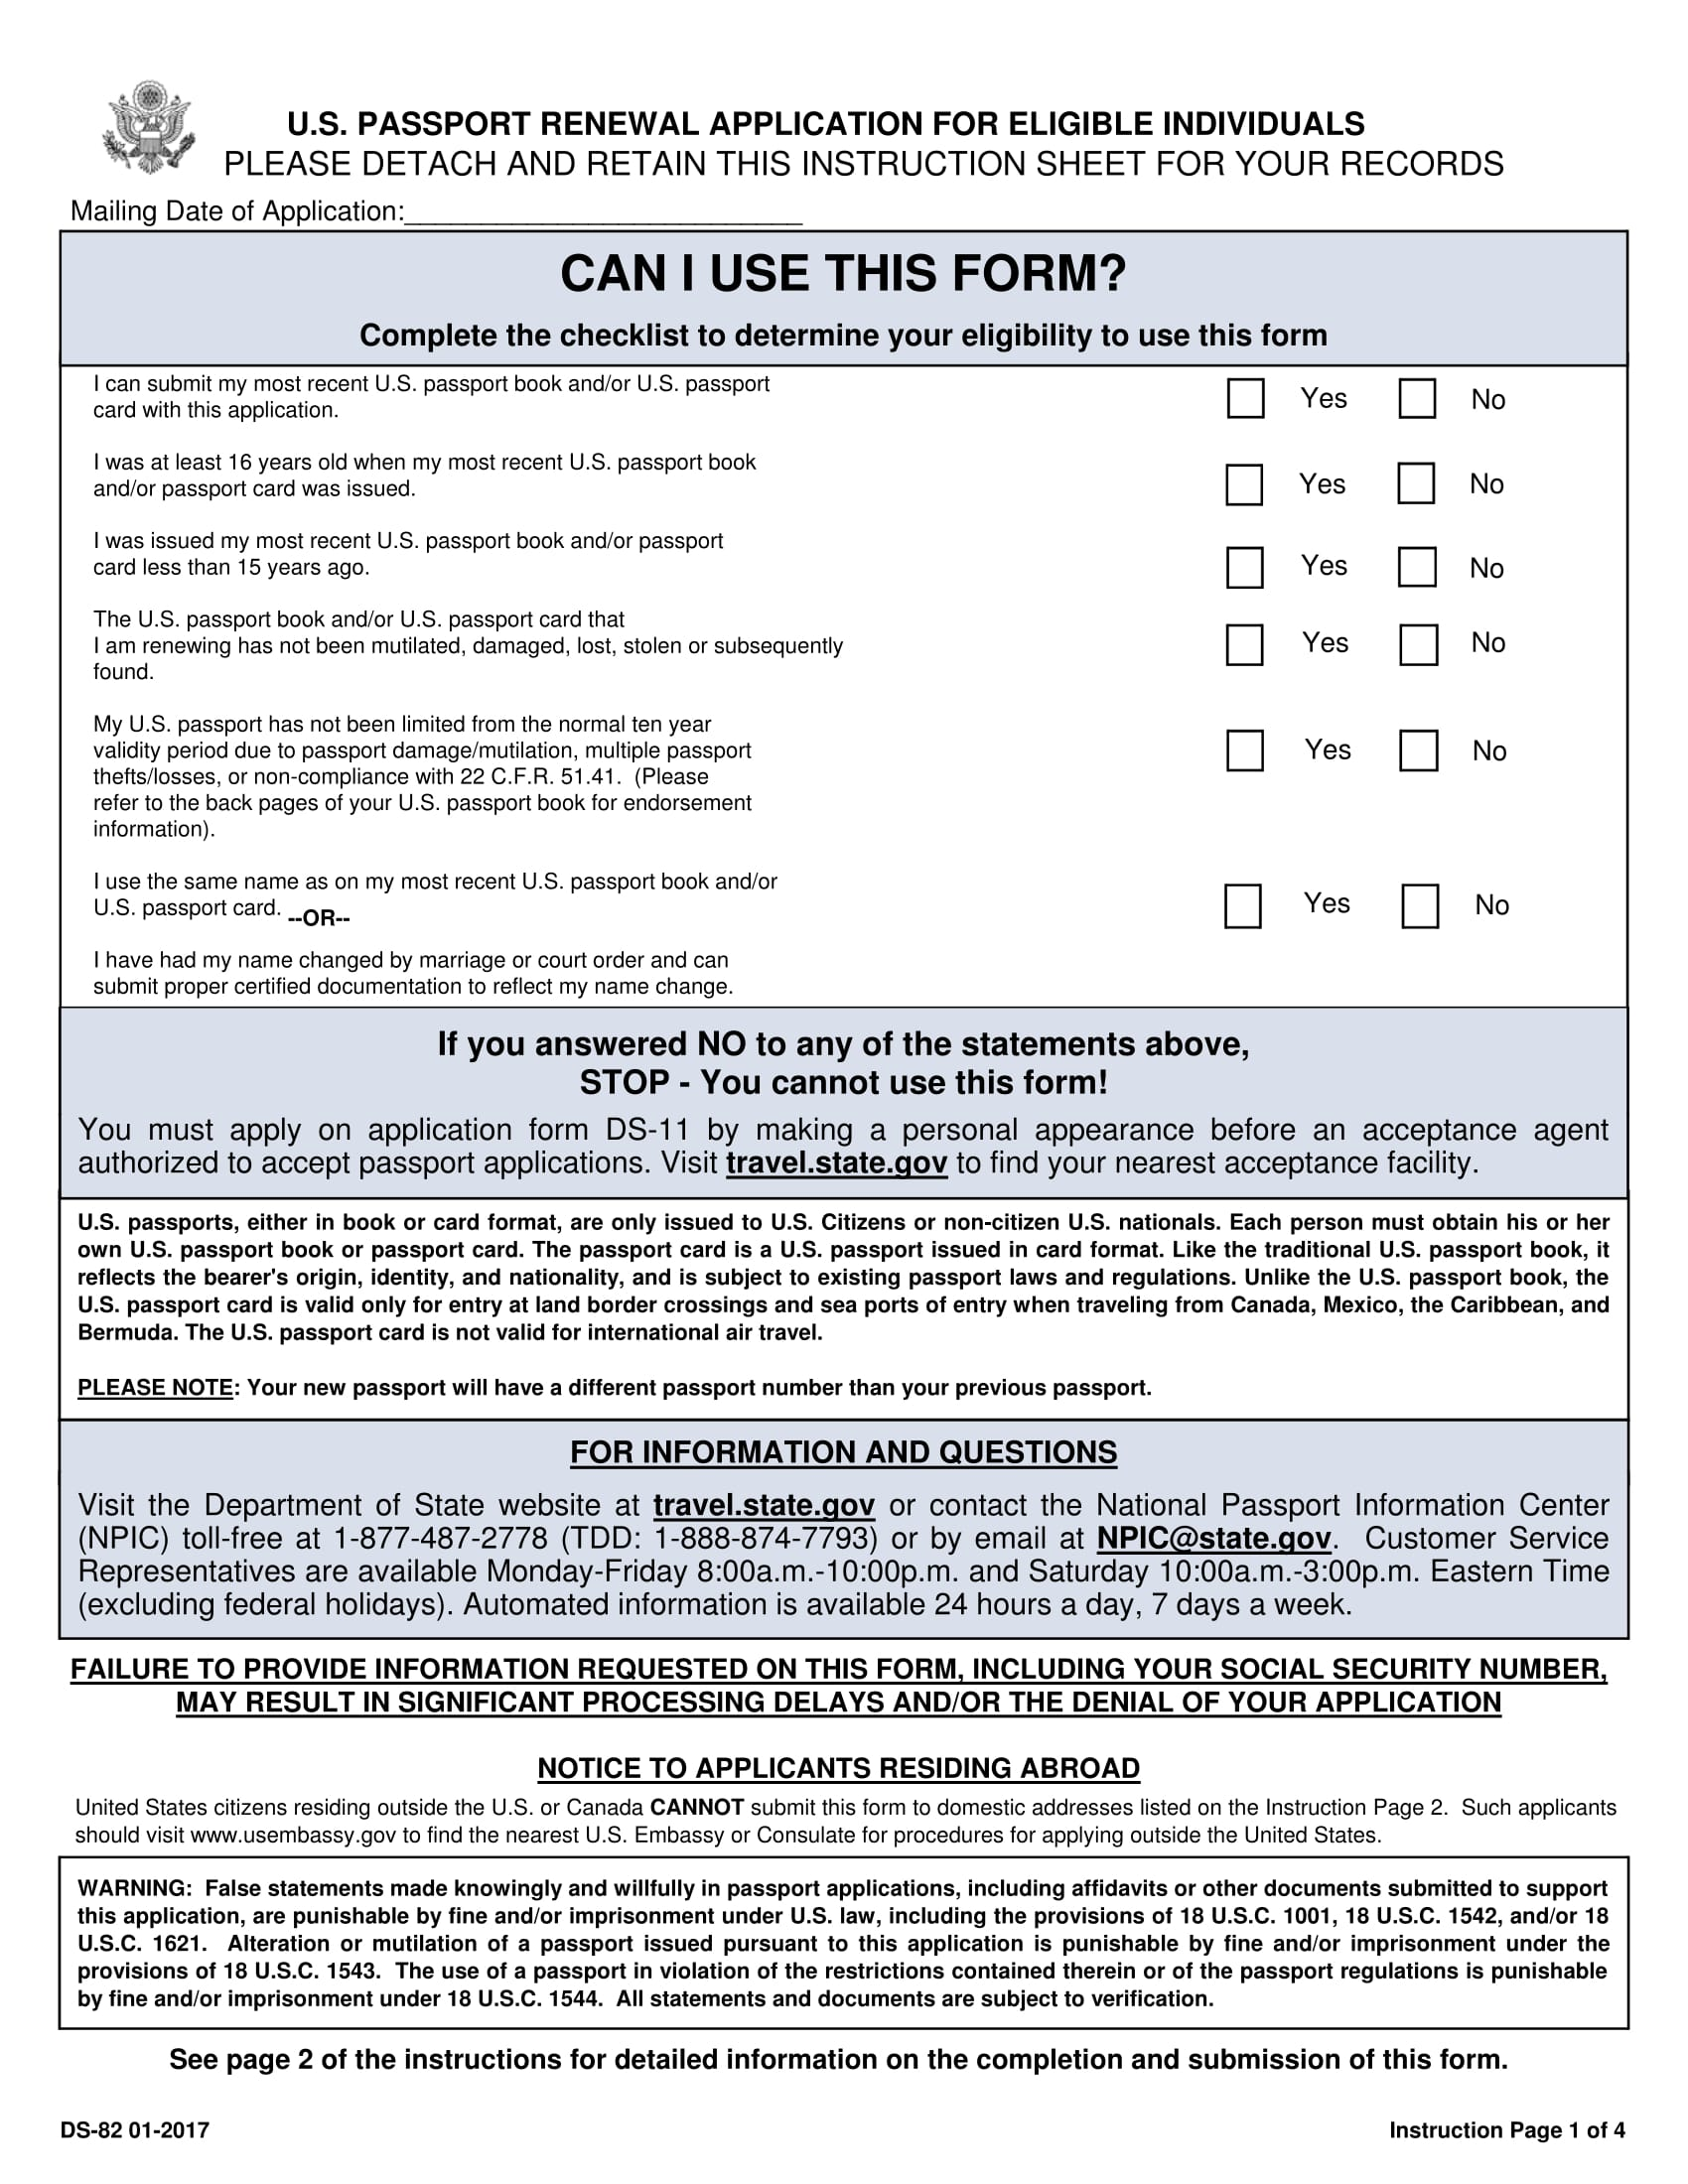 Free US Passport Renewal Application for Eligible Individuals – Passport Renewal Application Form